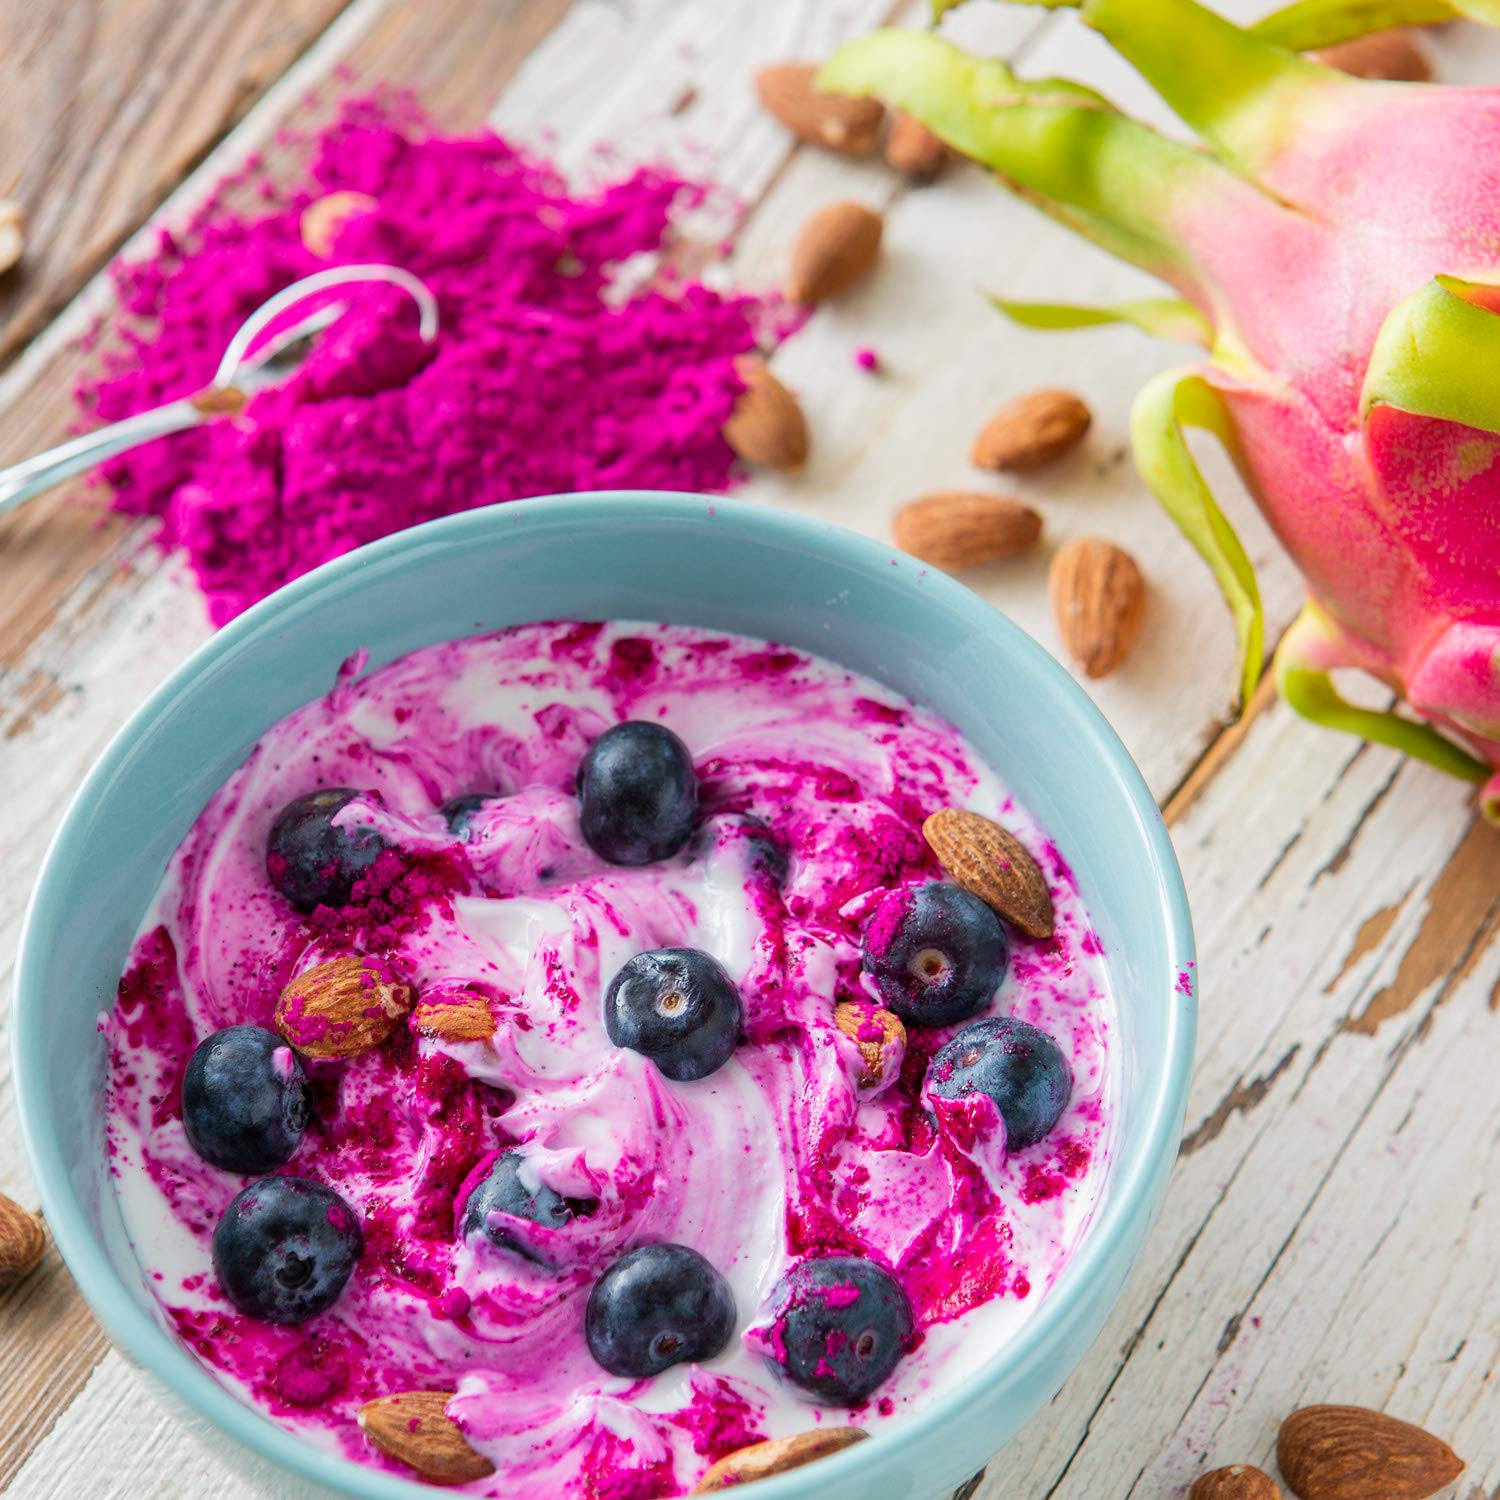 Pitaya Plus Freeze Dried Red Dragon Fruit Powder Organic. 4 Ounces of 100% Dragon Fruit for the Brightest Pink Rceipes. USDA and Oregon Tilth Organic, Non-GMO, Earth Kosher, Vegan Verified, B-Corp. by Pitaya Plus (Image #3)